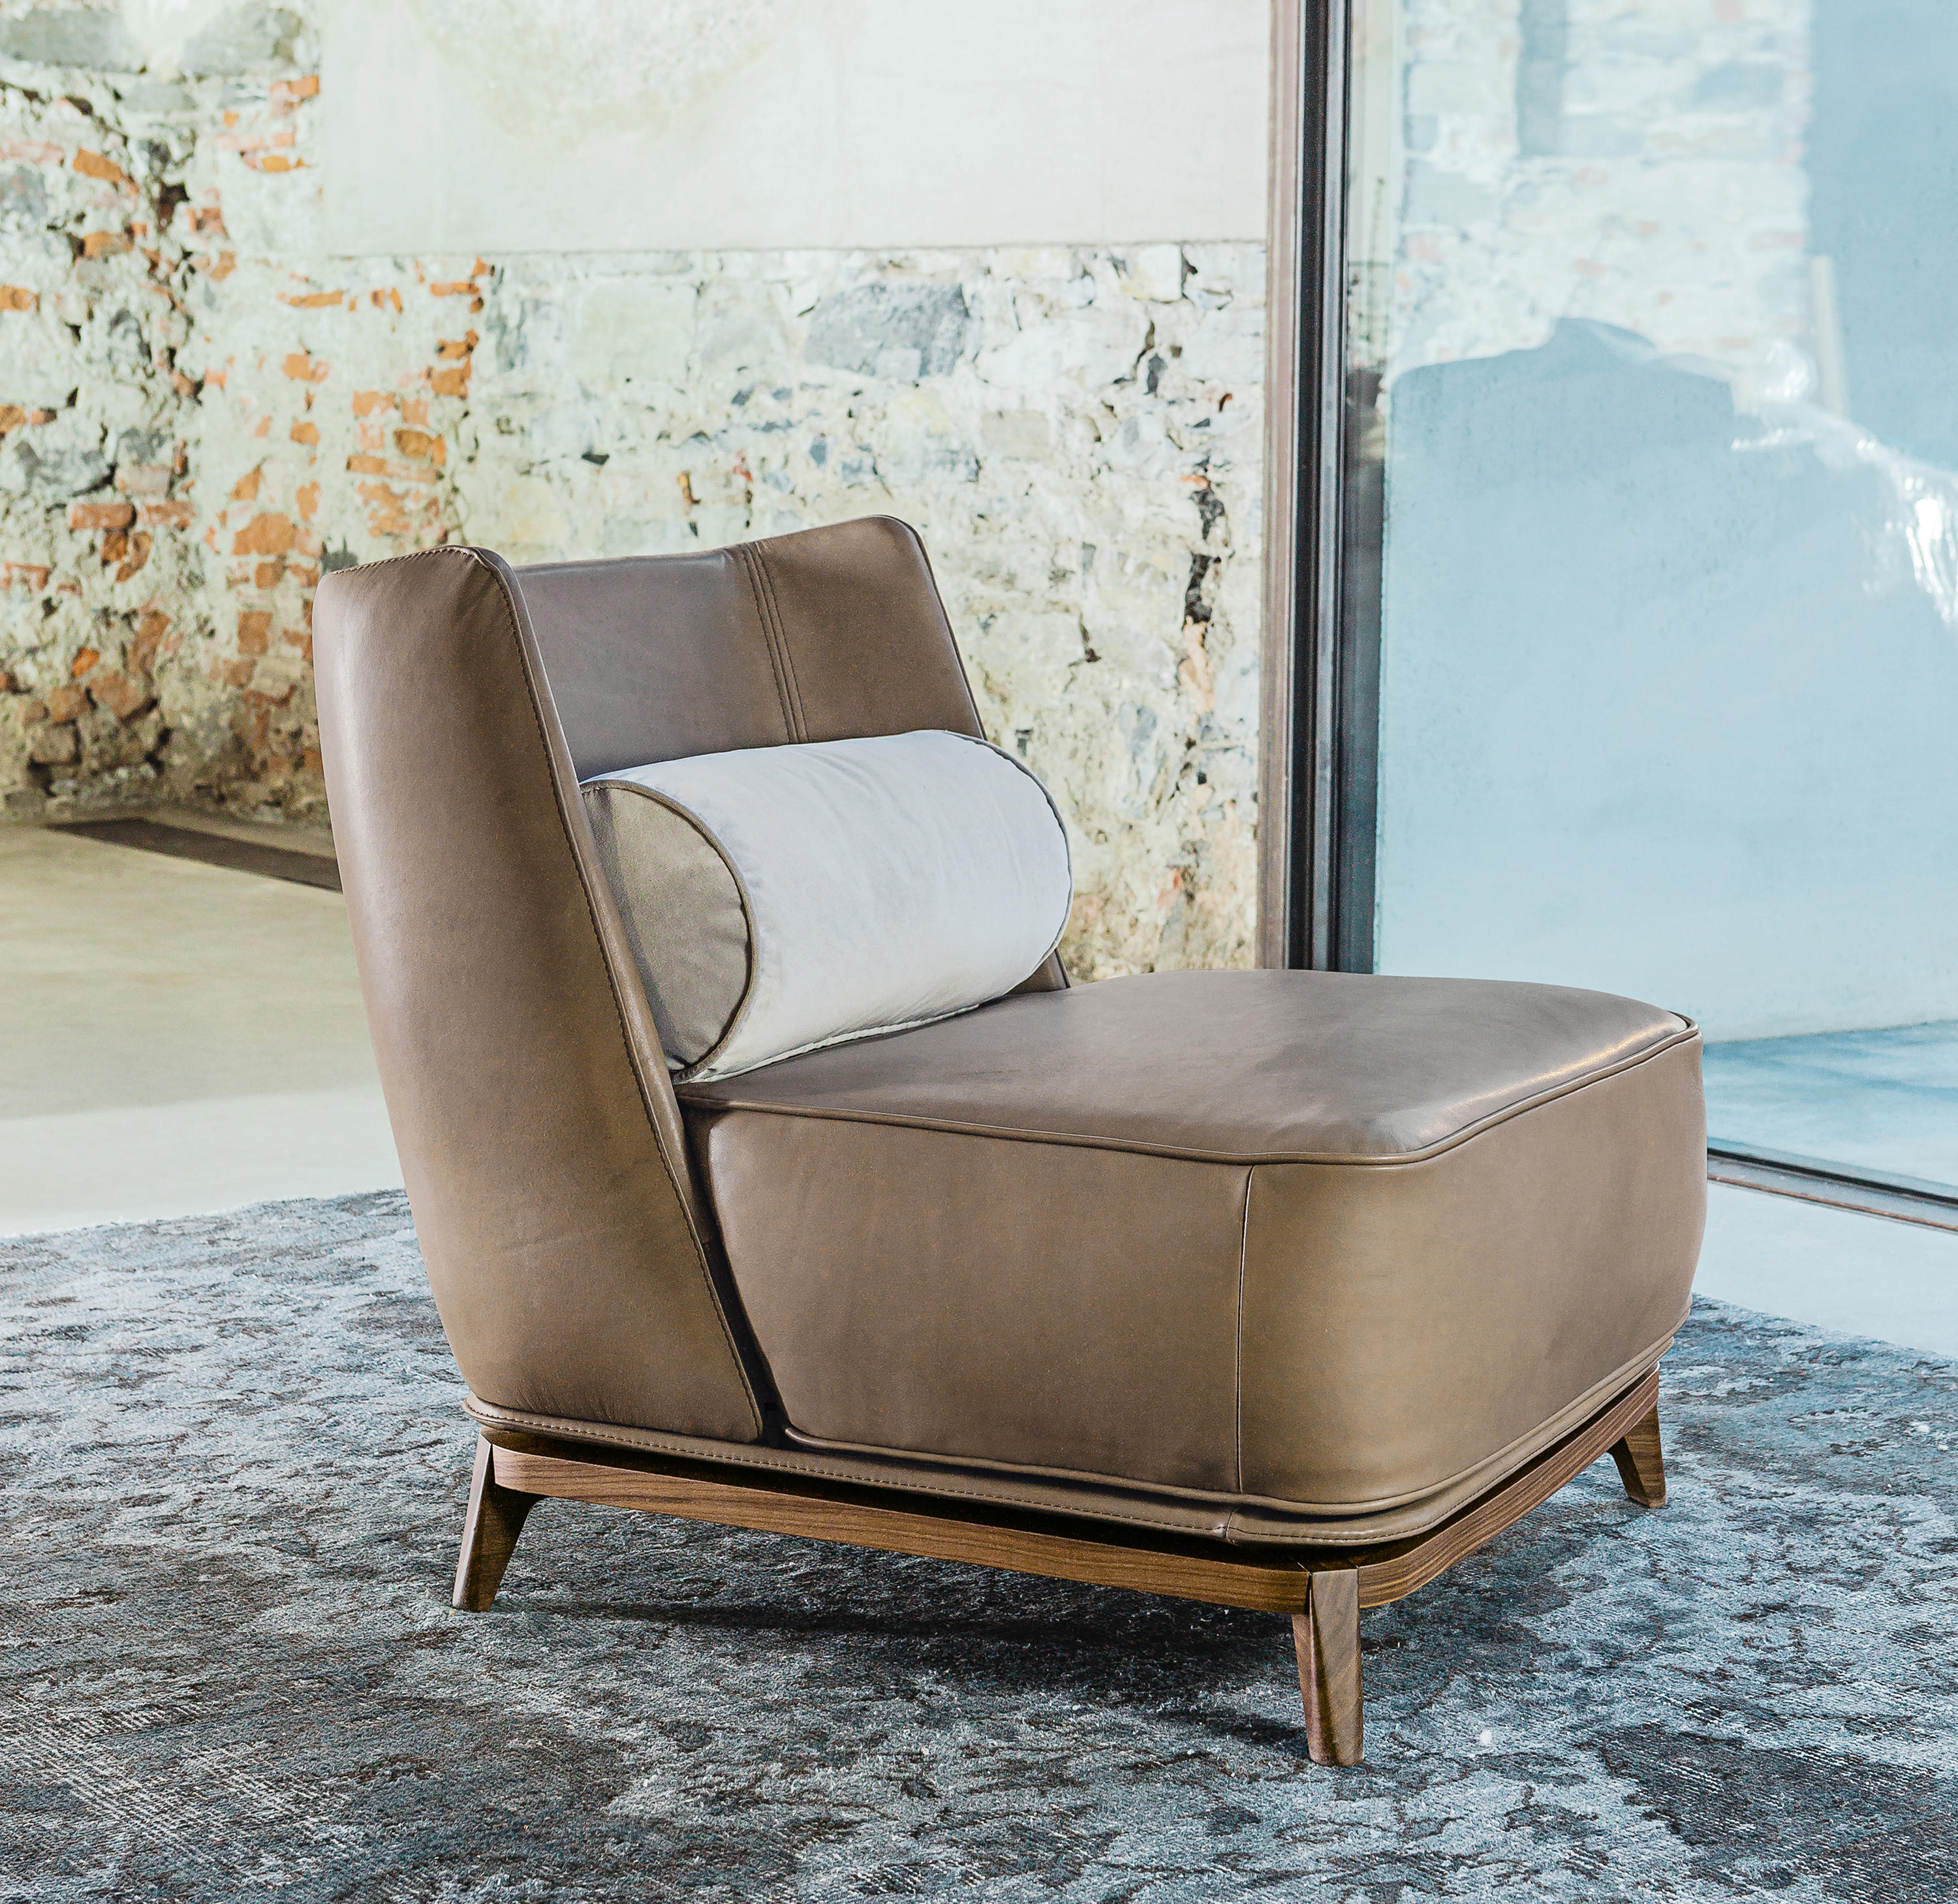 430 Sessel Opera 430 Armchair Armchairs From Vibieffe Architonic